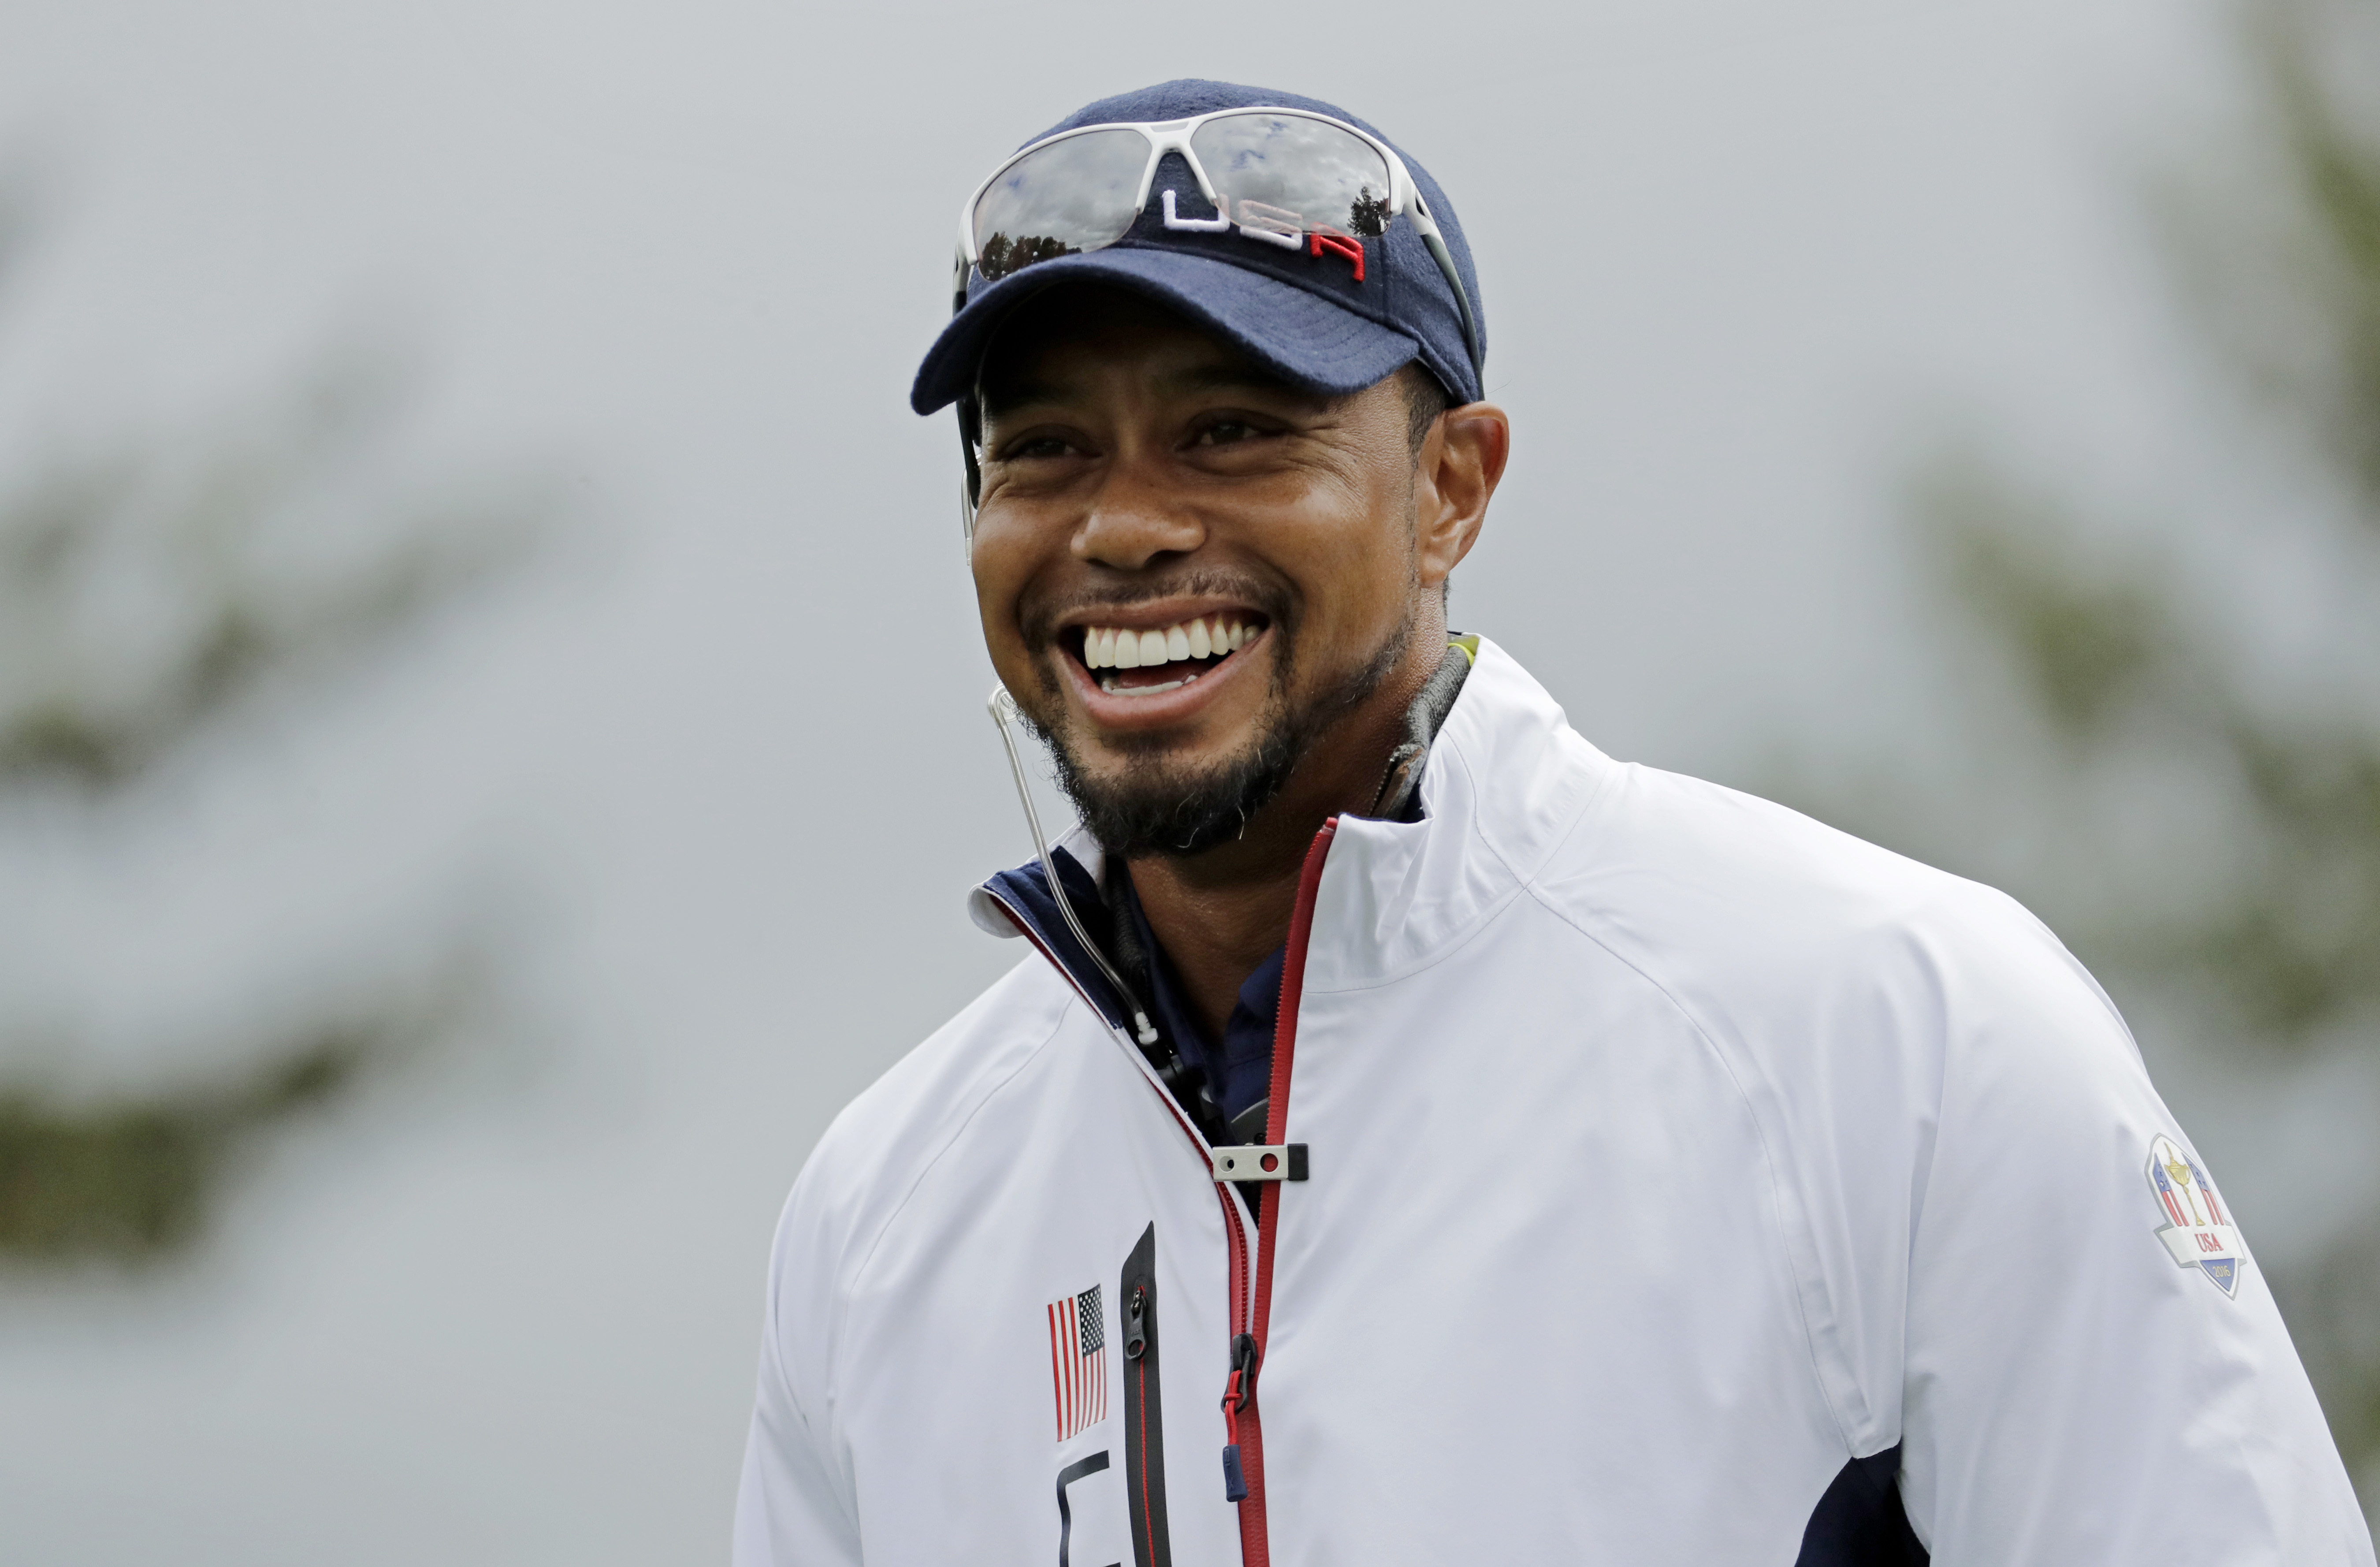 United States vice-captain Tiger Woods smiles during a practice round for the Ryder Cup golf tournament Wednesday, Sept. 28, 2016, at Hazeltine National Golf Club in Chaska, Minn. (AP Photo/Charlie Riedel)